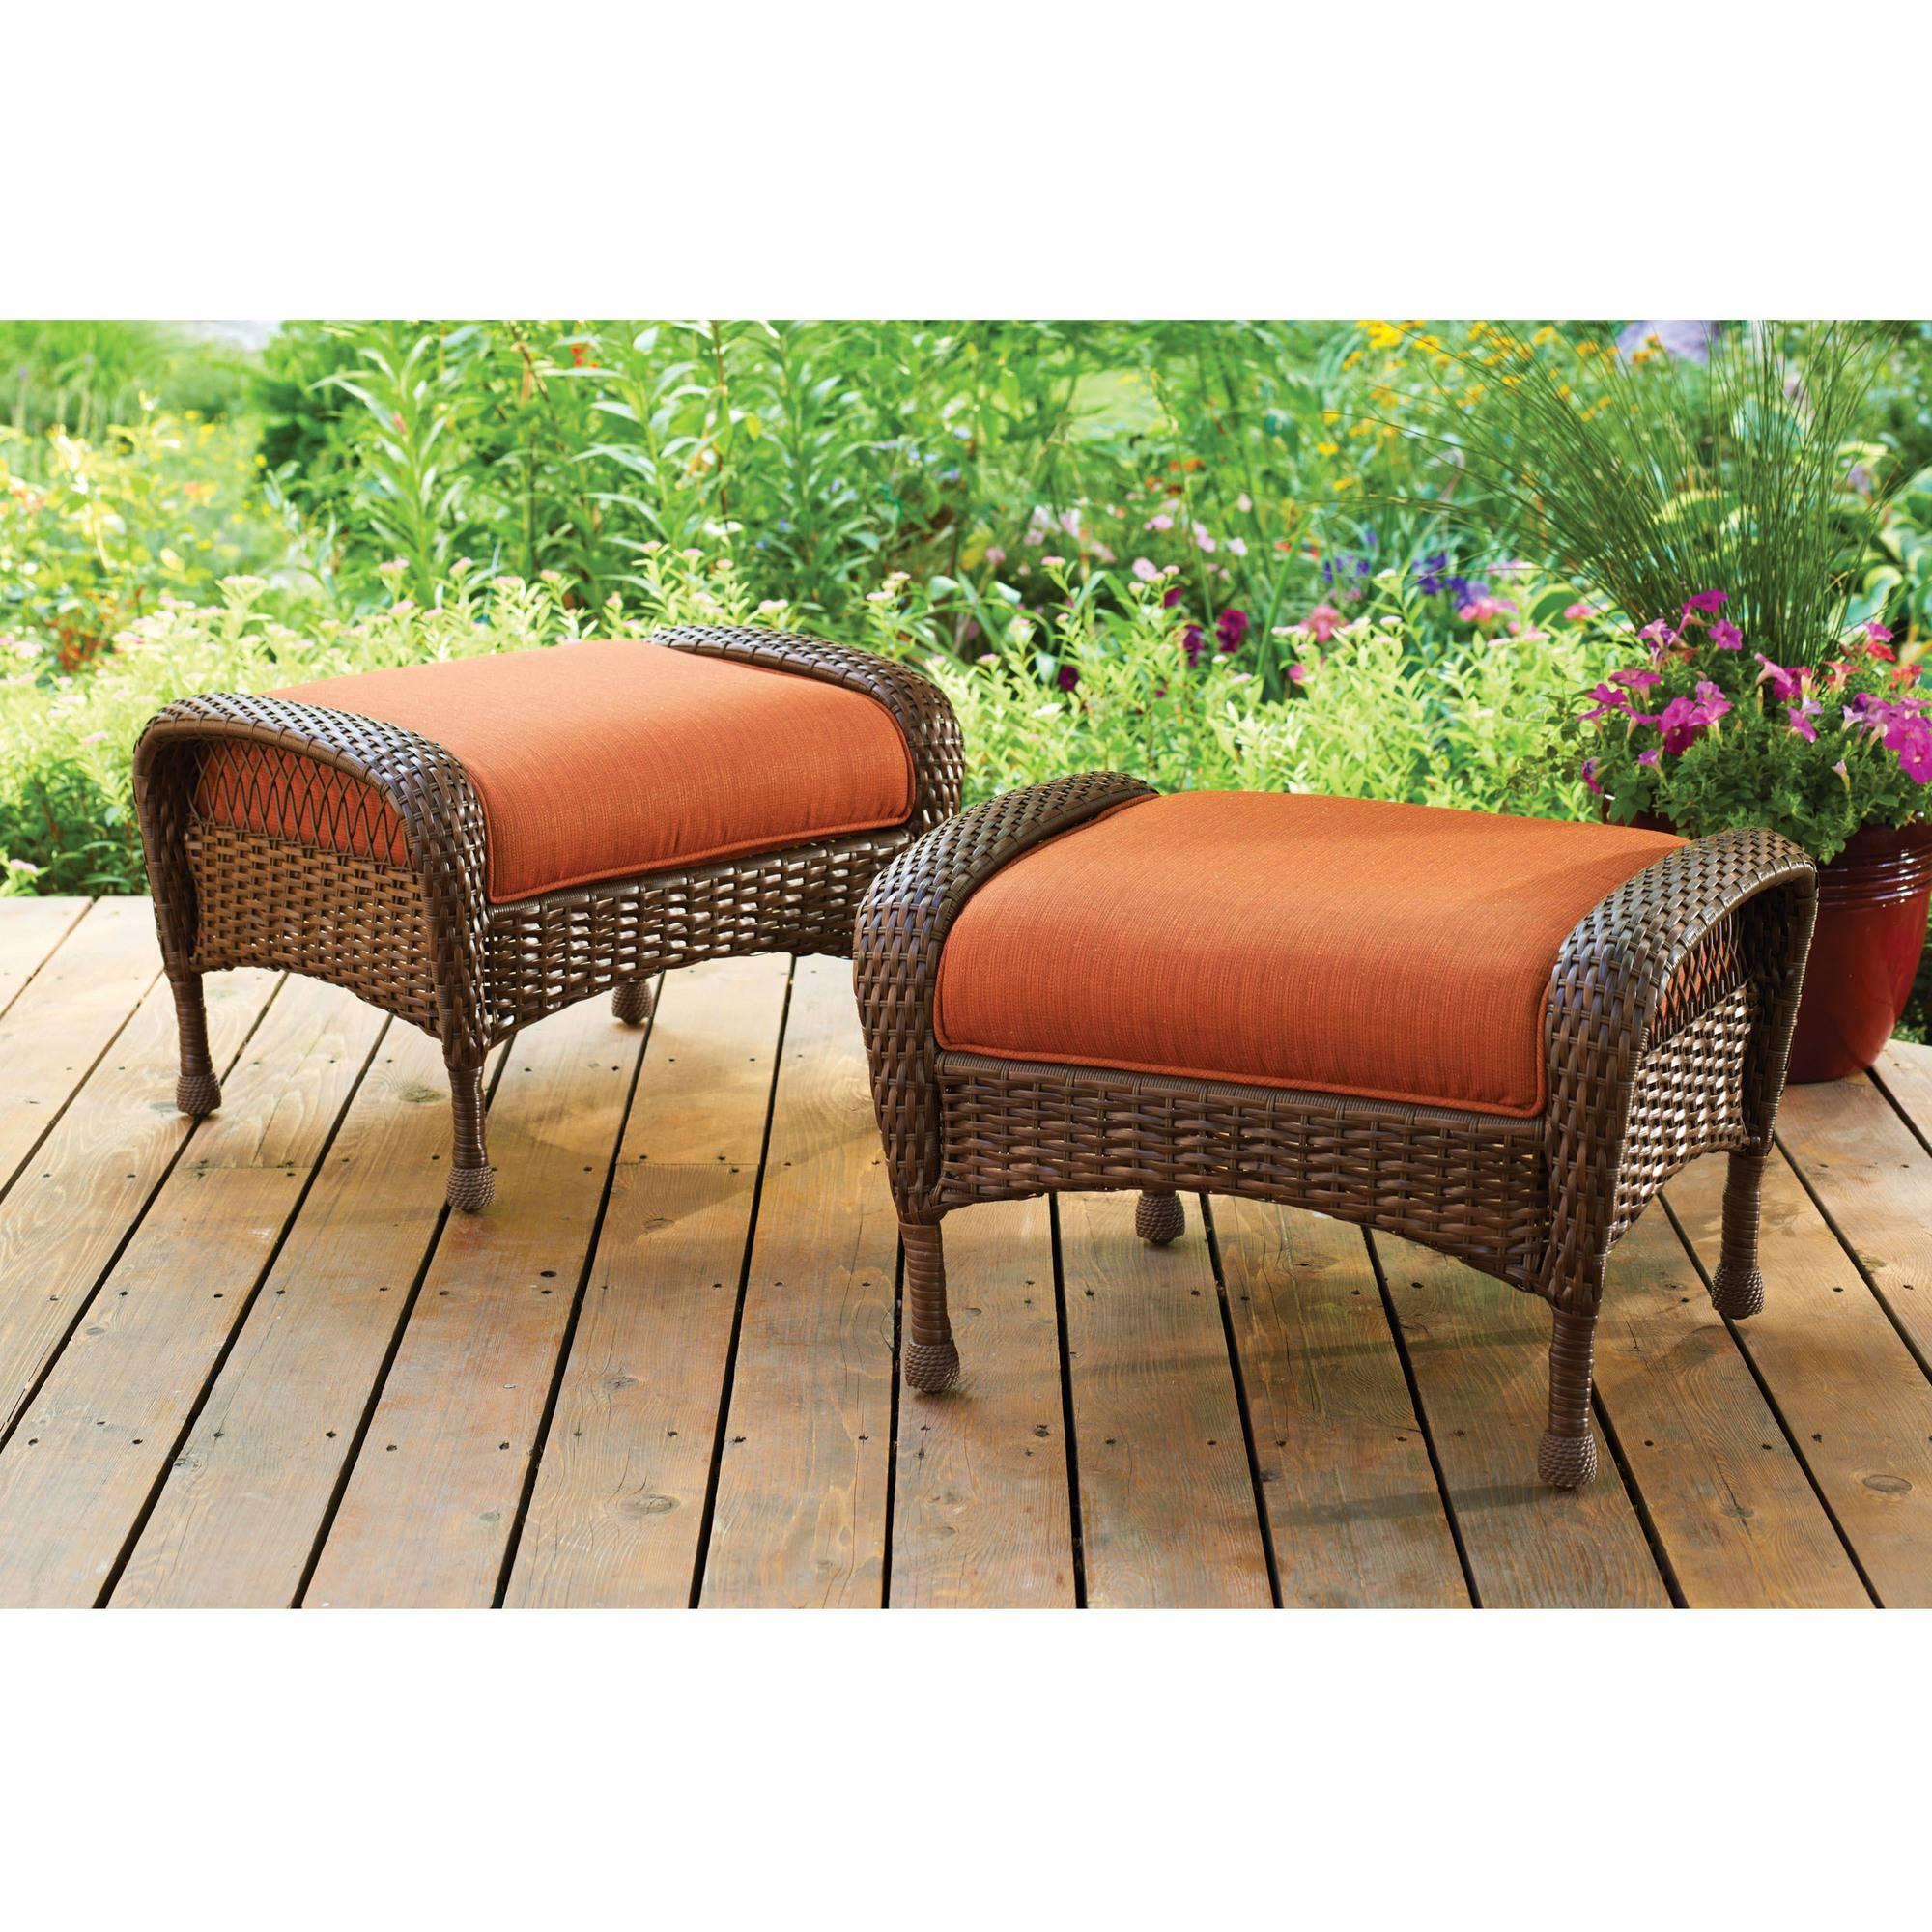 Patio Furniture - Walmart for Patio Sofa Tables (Image 23 of 30)